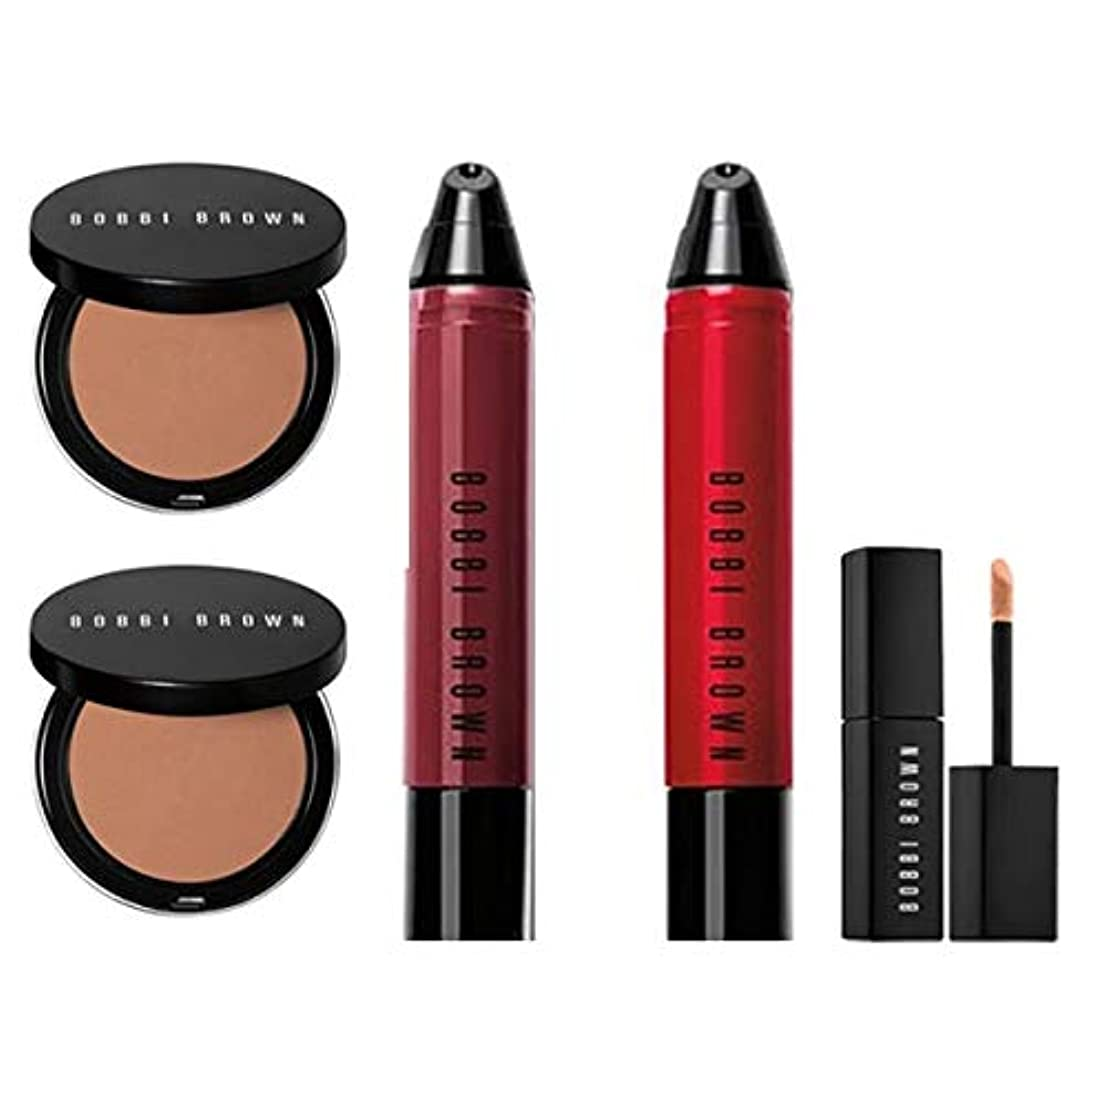 器用刈り取る君主制Bobbi Brown Mini ミニ 5set - 2x Liquid Lip + 2x Bronzing Powder + 1x Serum Concealer [海外直送品] [並行輸入品]